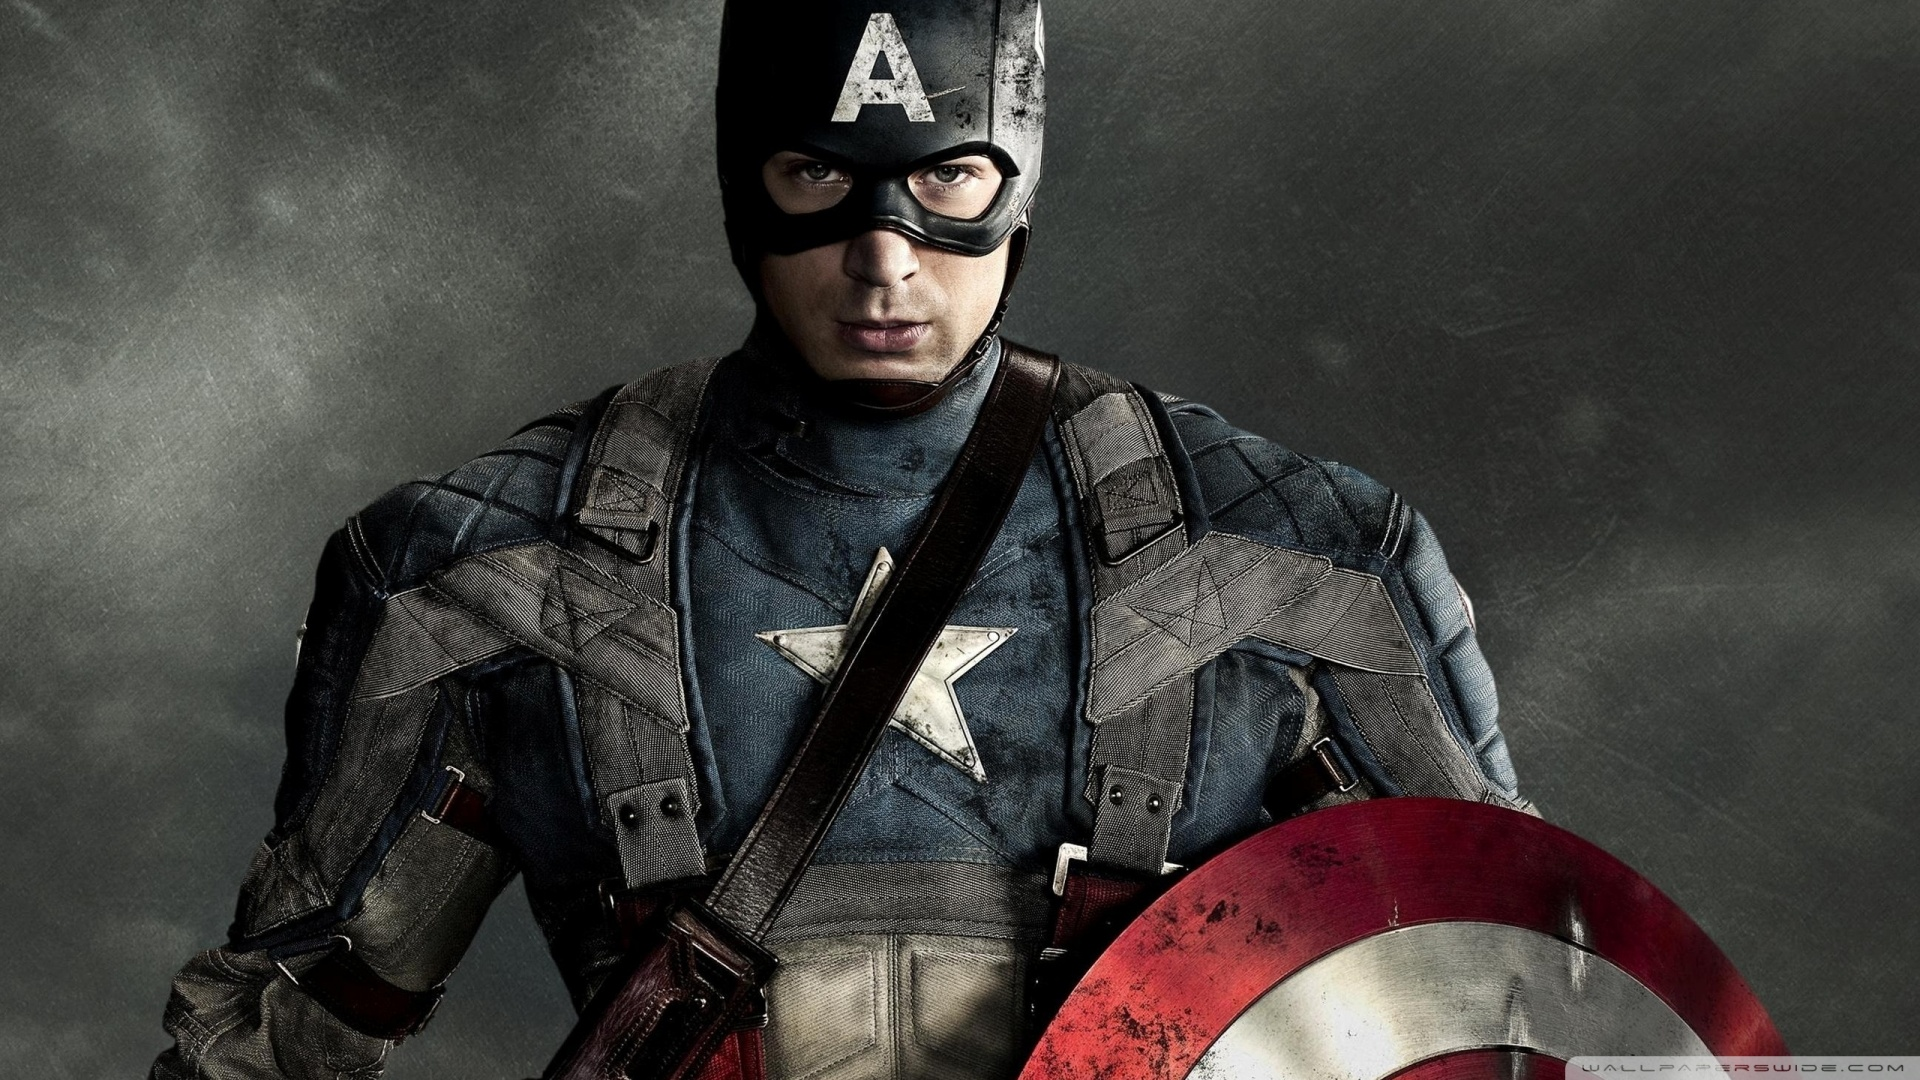 Captain-America-HD-1920x1080-Need-iPhone-S-Plus-Background-for-IPhone-wallpaper-wpc9003342